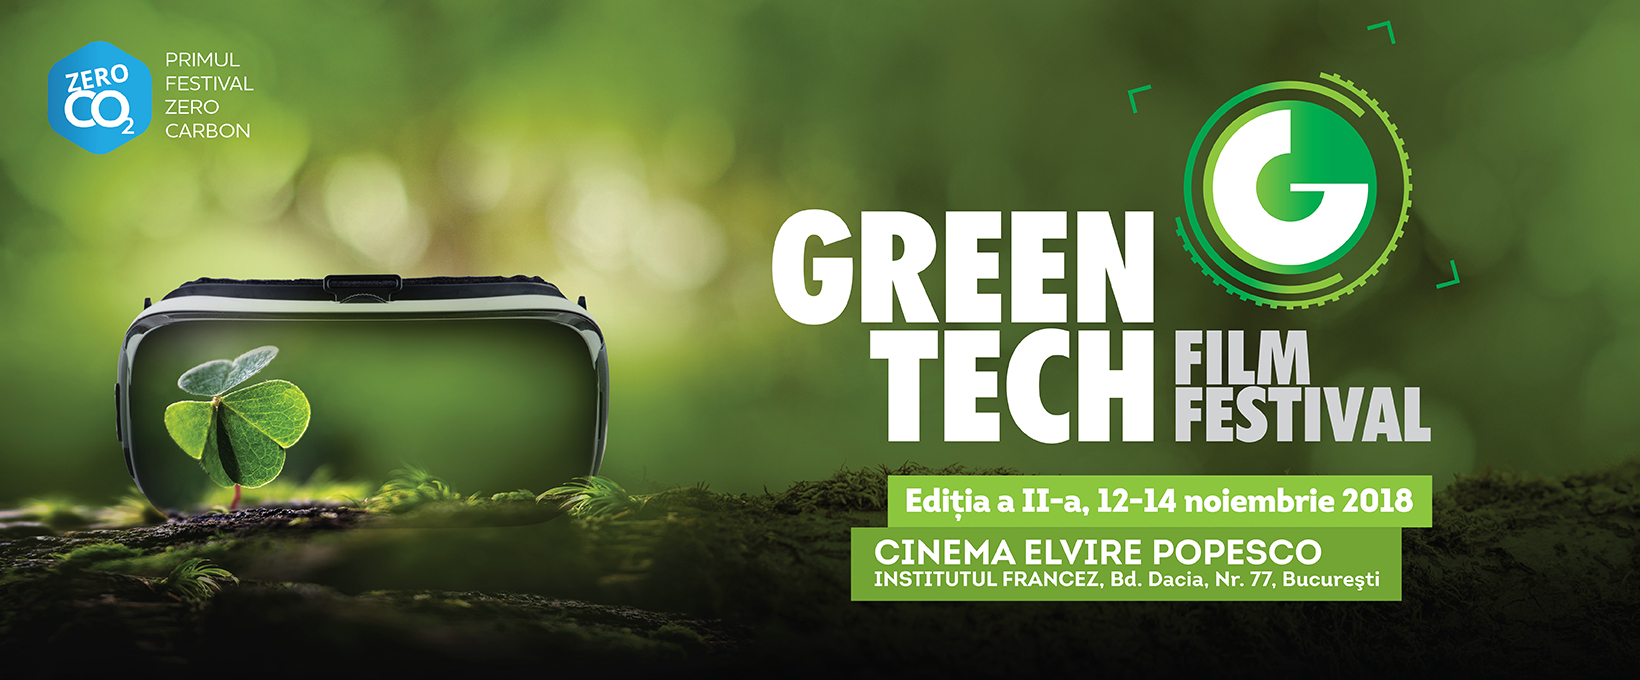 cover GreenTechFest2018 KV 01